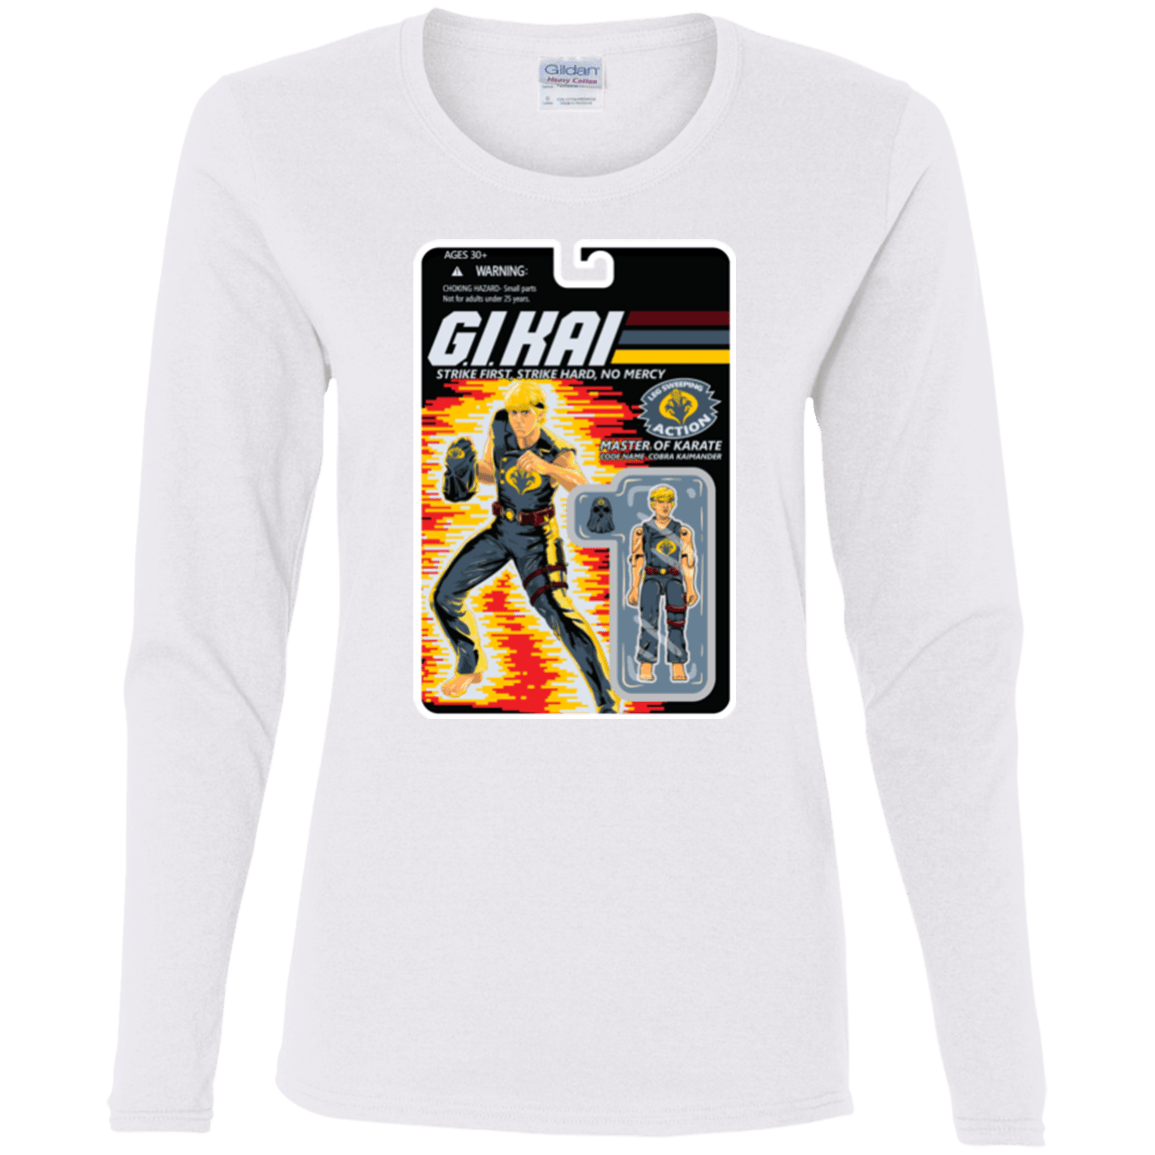 T-Shirts White / S GI KAI Women's Long Sleeve T-Shirt